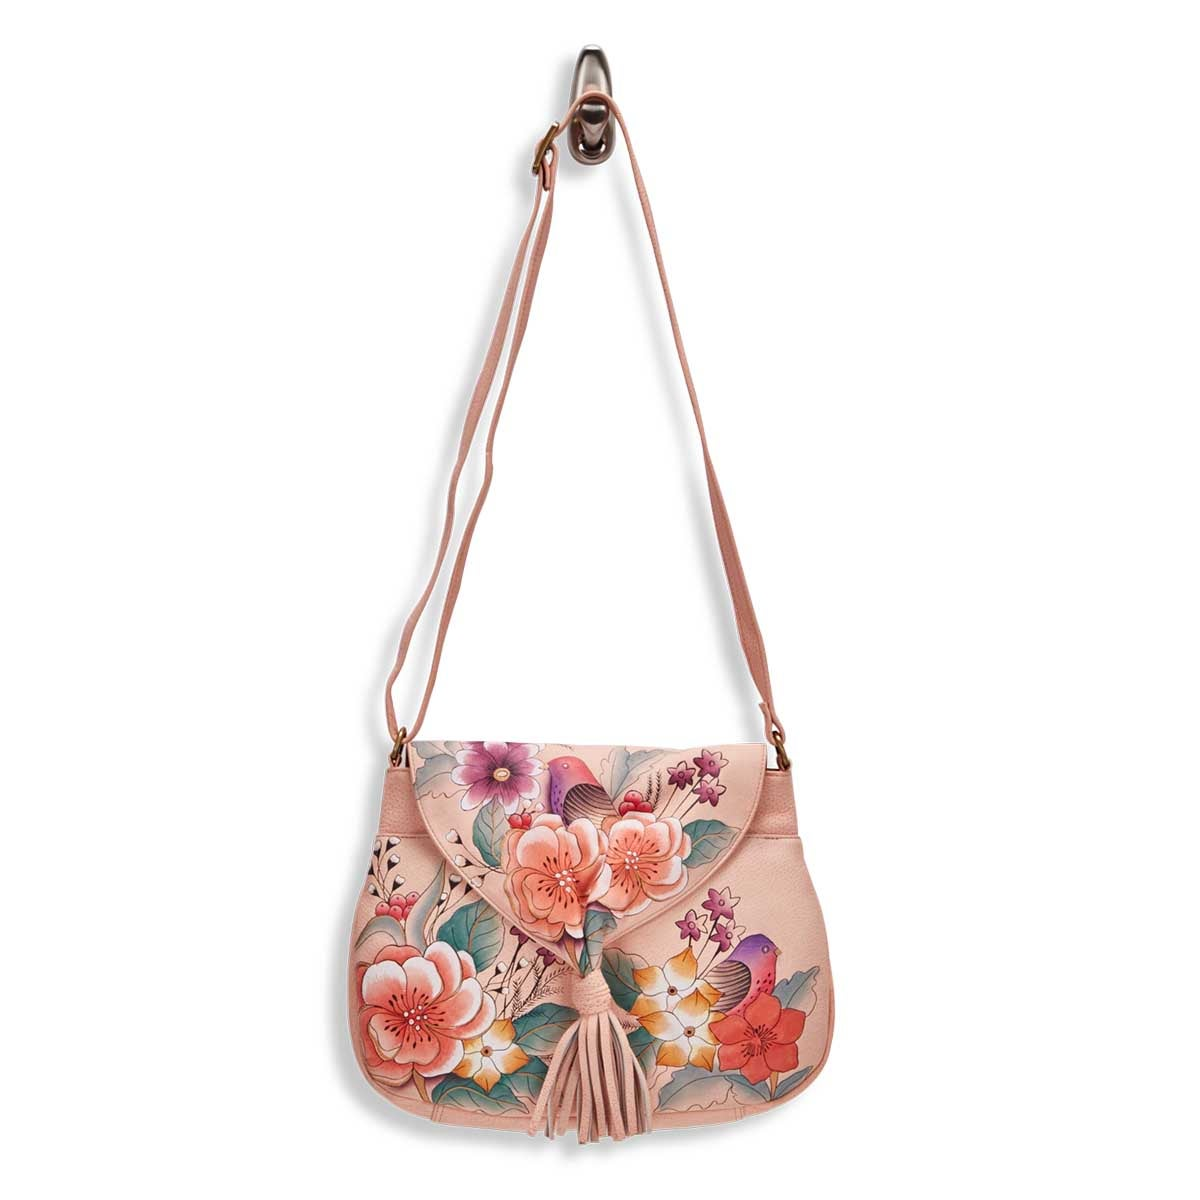 Painted lthr VintageGarden flap hobo bag